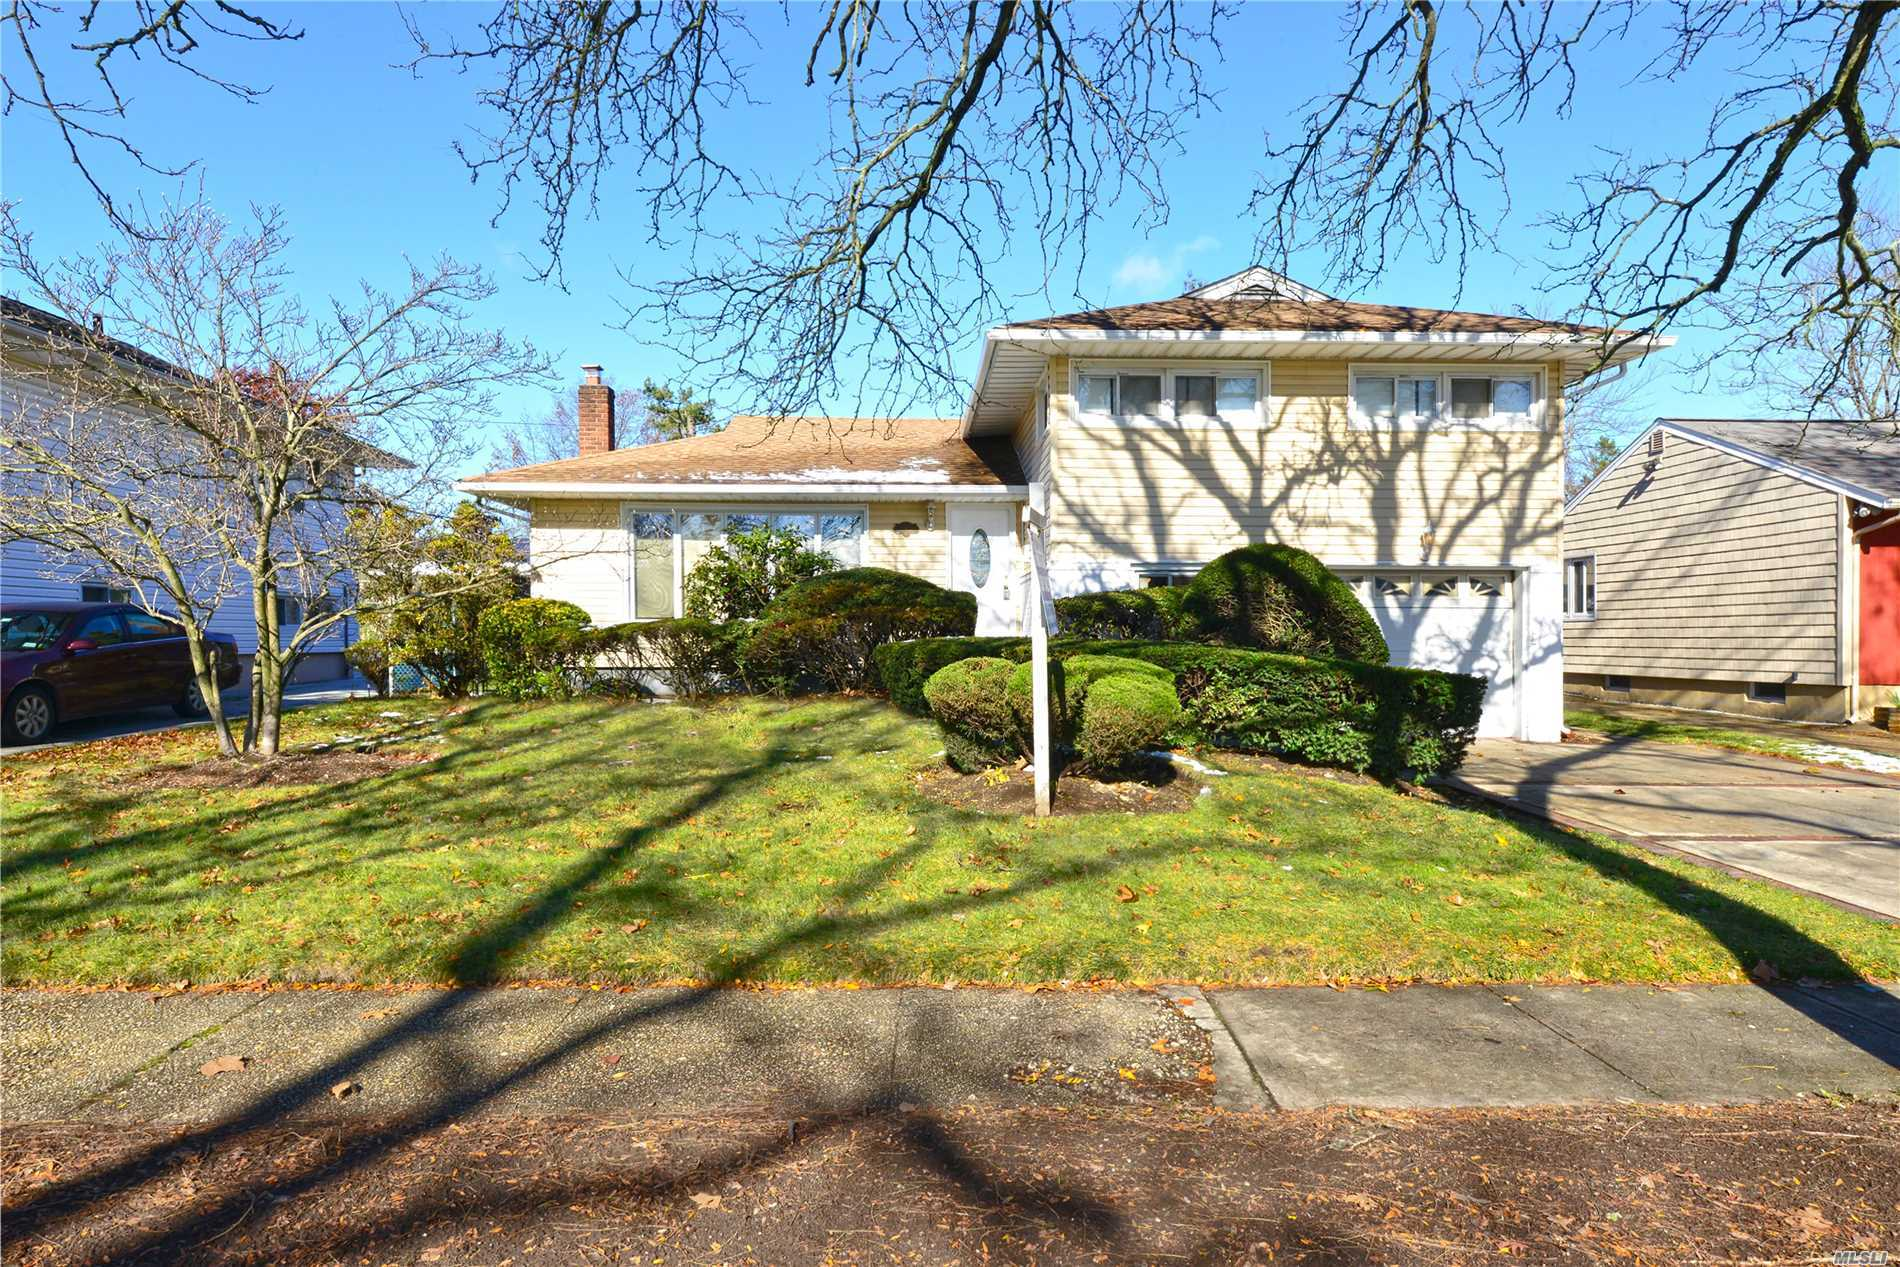 Huge Split Level Home In A Great Location! This Totally Renovated Home Has 3 Br & 3 Baths Including 1 Master Br With A Full Bath, Nice Family Rm, Laundry Rm & 1 Car Garage And Full Finished Basement. New Stainless Steel Appliances W/ Granite Counter Tops. Big Beautiful Backyard. Must See Property!